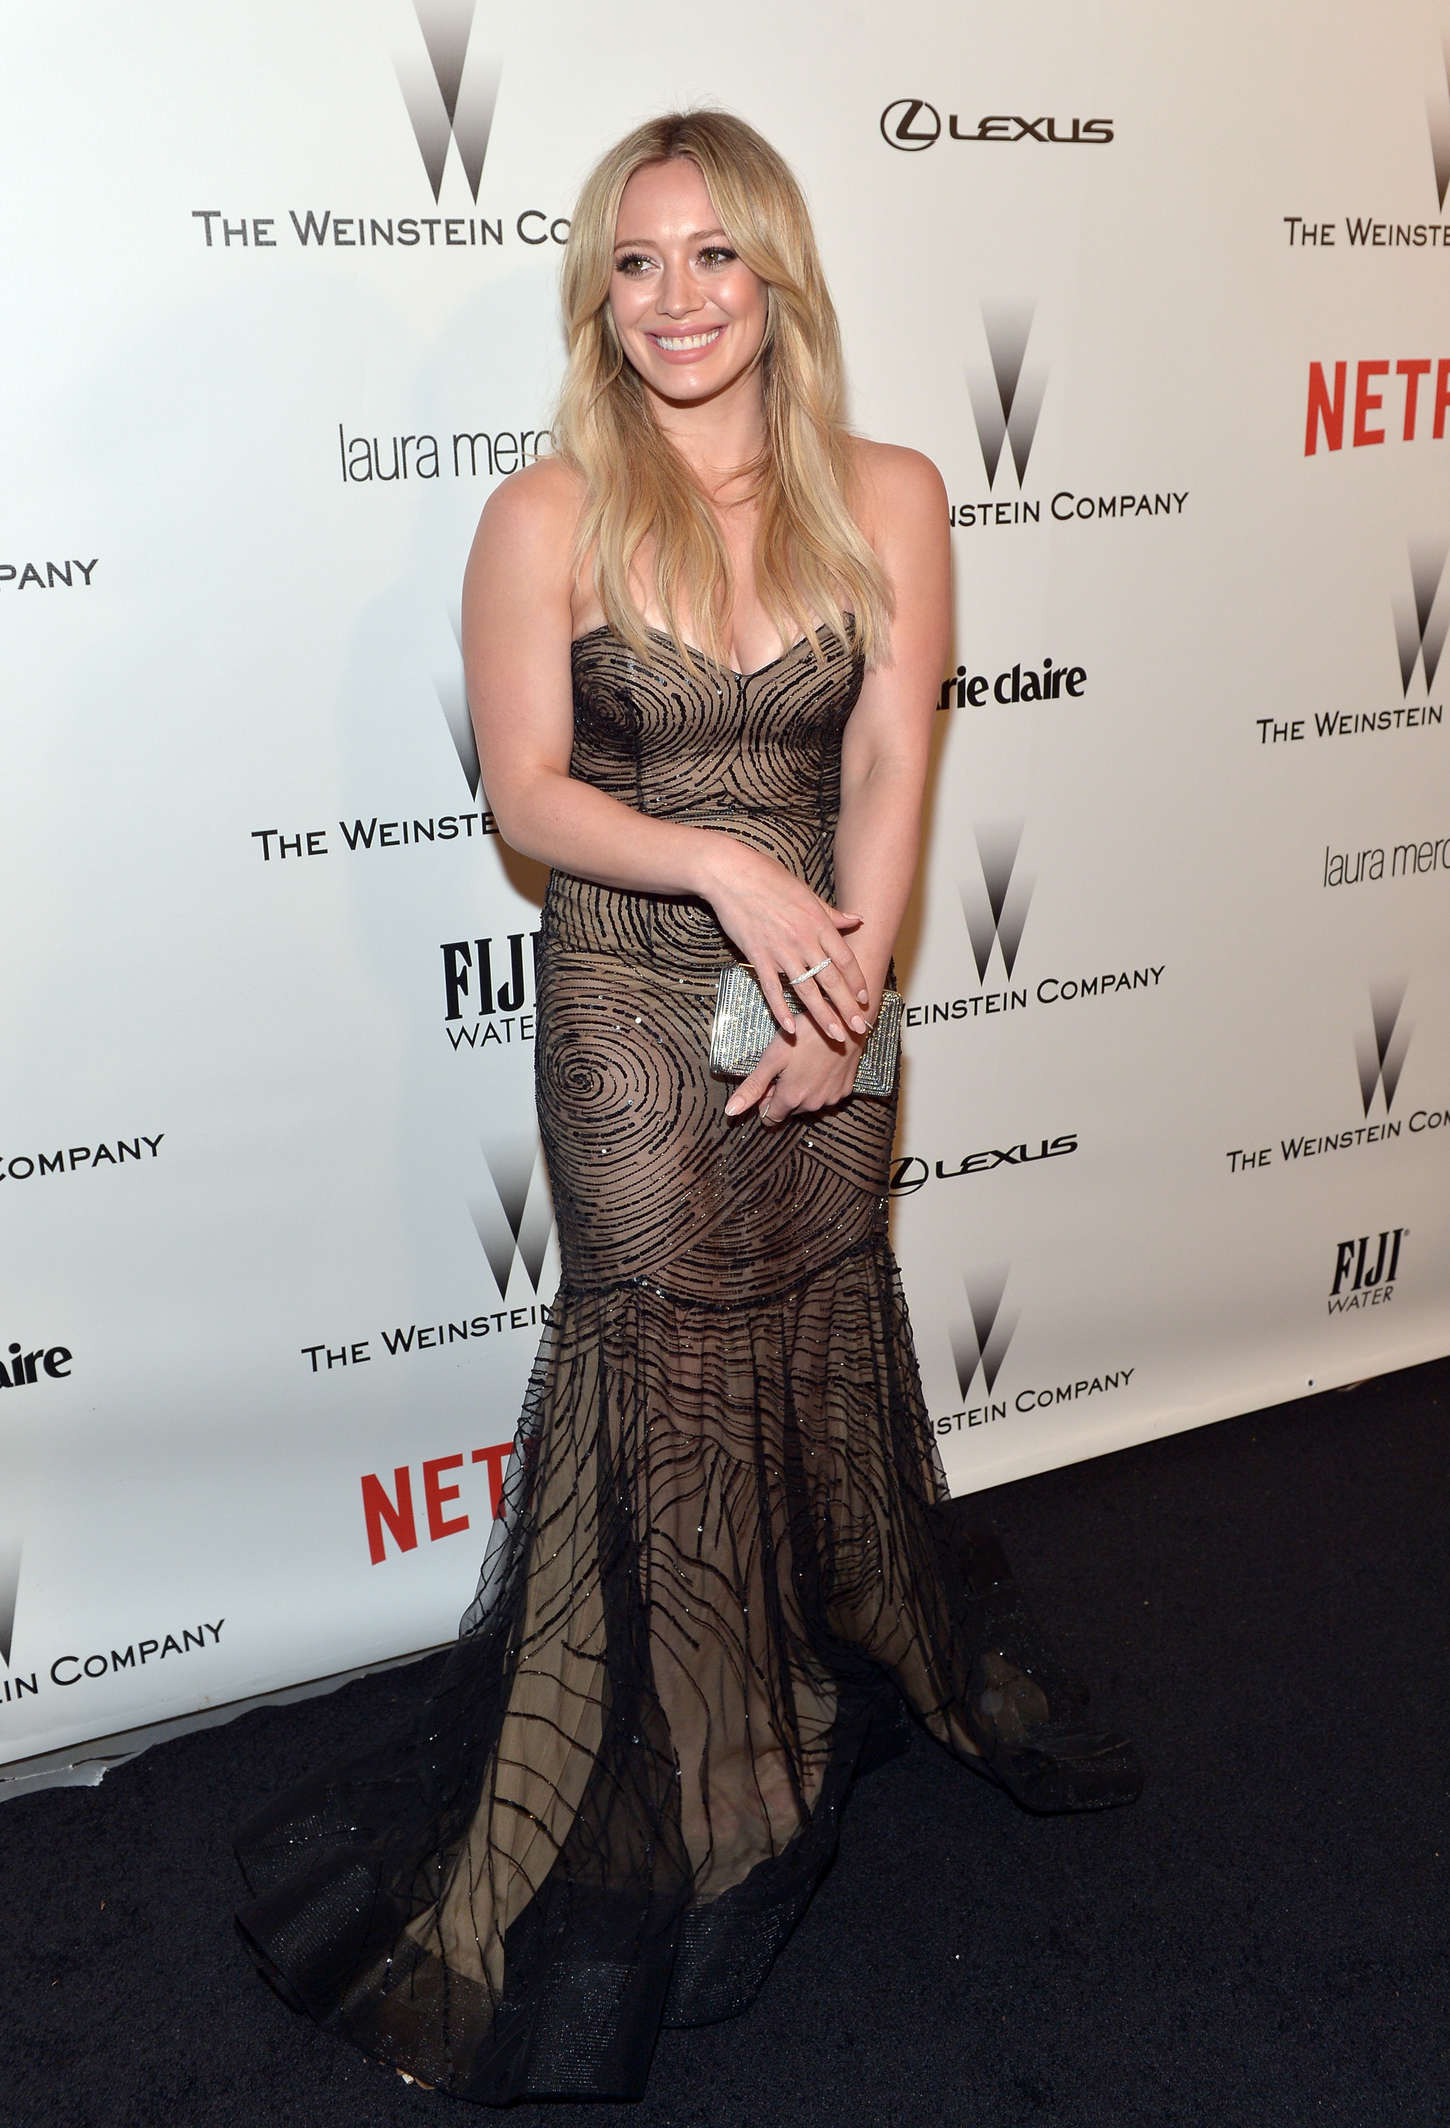 Hilary Duff 2015 : Hilary Duff: 2015 The Weinstein Company and Netflixs Golden Globes Party -01